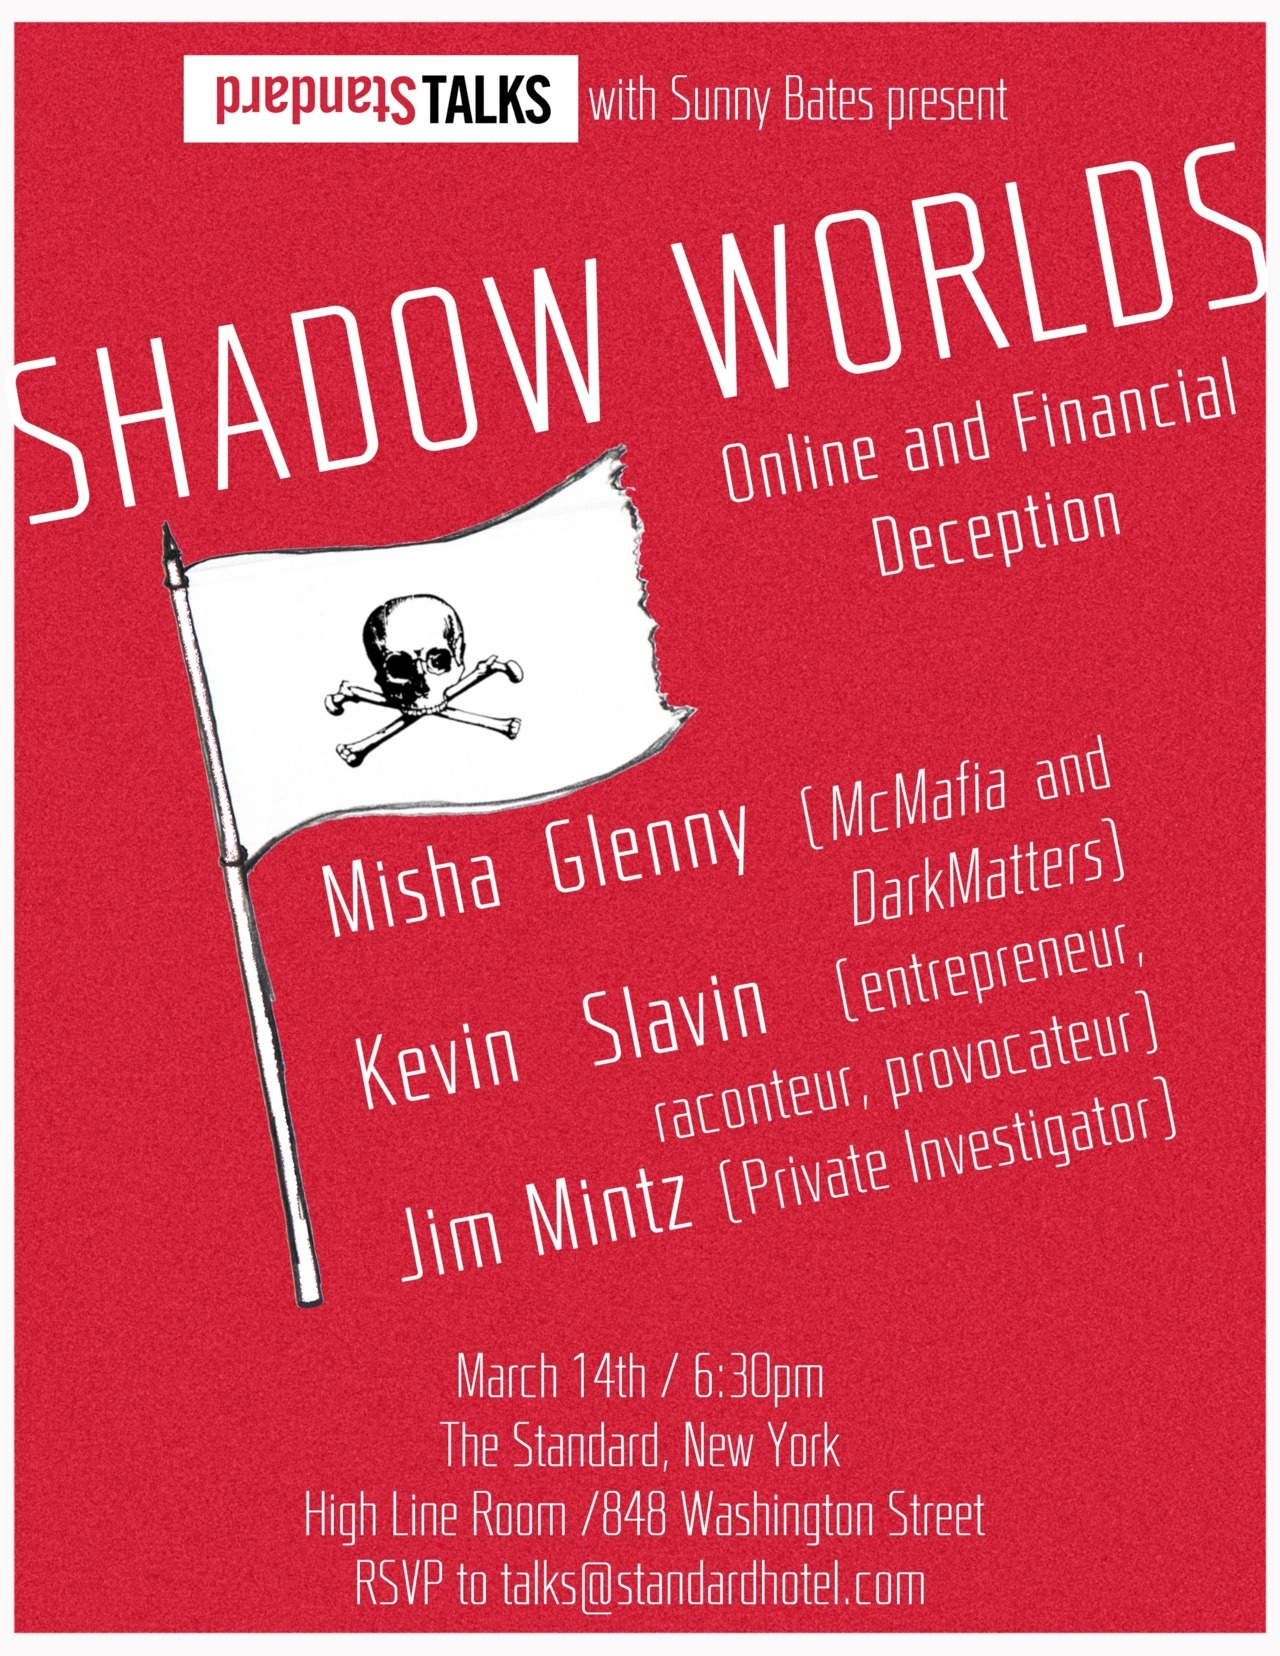 "Standard Talks - SHADOW WORLDS March 14th / 6:30pm  The Standard, New York RSVP at talks@standardhotel.com  Join us for a revelatory night where we will explore what and who lies in the dark corners of the online and financial worlds. From the mafias hiding behind the computer screen, to the hackers bringing down multinational organizations and stopping by to explore what people can do with the money you entrust them; what we will uncover is more vast and complex than you could possibly imagine.With Misha Glenny, journalist and author of ""McMafia: A Journey T hrough the Global Criminal Underworld"" and more recently ""DarkMarket: Cyberthieves, Cybercops and You""http://www.ted.com/talks/misha_glenny_hire_the_hackers.htmlJim Mintz, private investigator of financial crimes.http://www.mintzgroup.com/who-we-are-bio-james-mintz.aspand Kevin Slavin, entrepreneur, raconteur, provocateur, where there is smoke…Kevin is nearby. http://www.ted.com/talks/kevin_slavin_how_algorithms_shape_our_world.htmlCome with us as we go behind your inbox and discover the incredibly complex network of programs, people and organizations working in the dark."